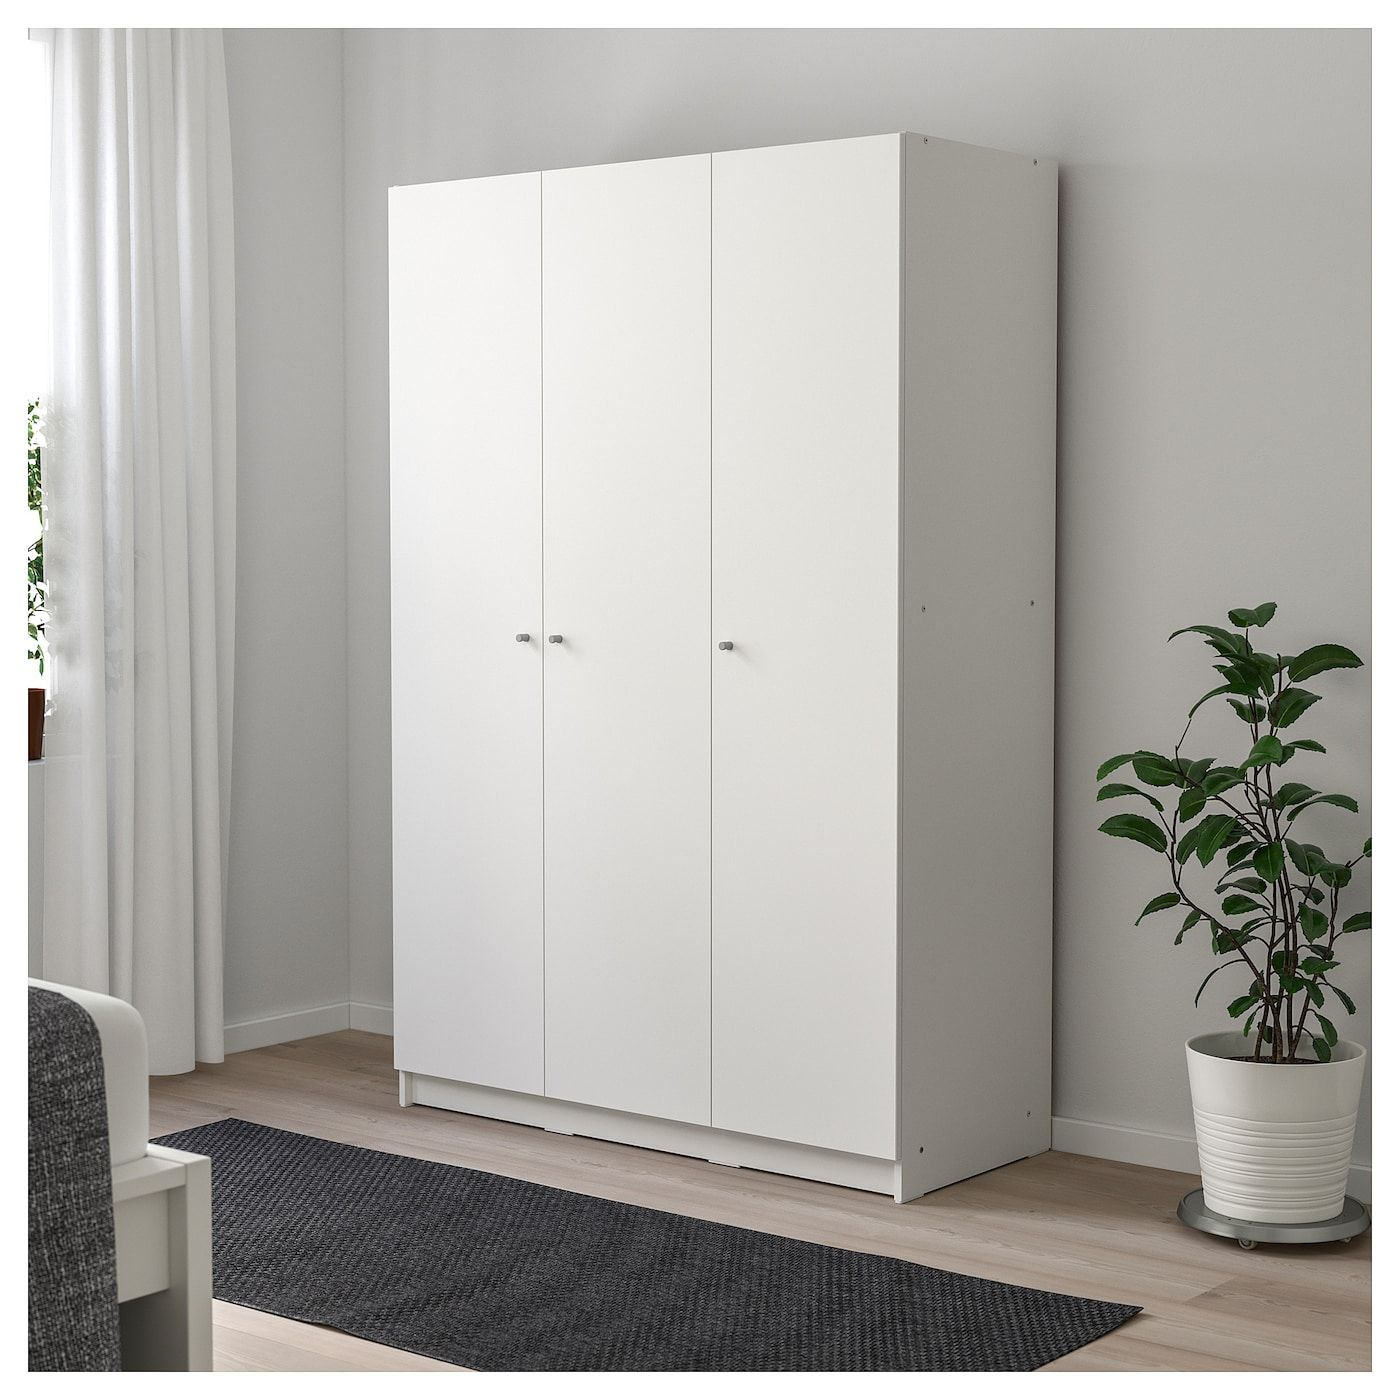 Ikea Us Furniture And Home Furnishings White Armoire Furniture Home Furnishings